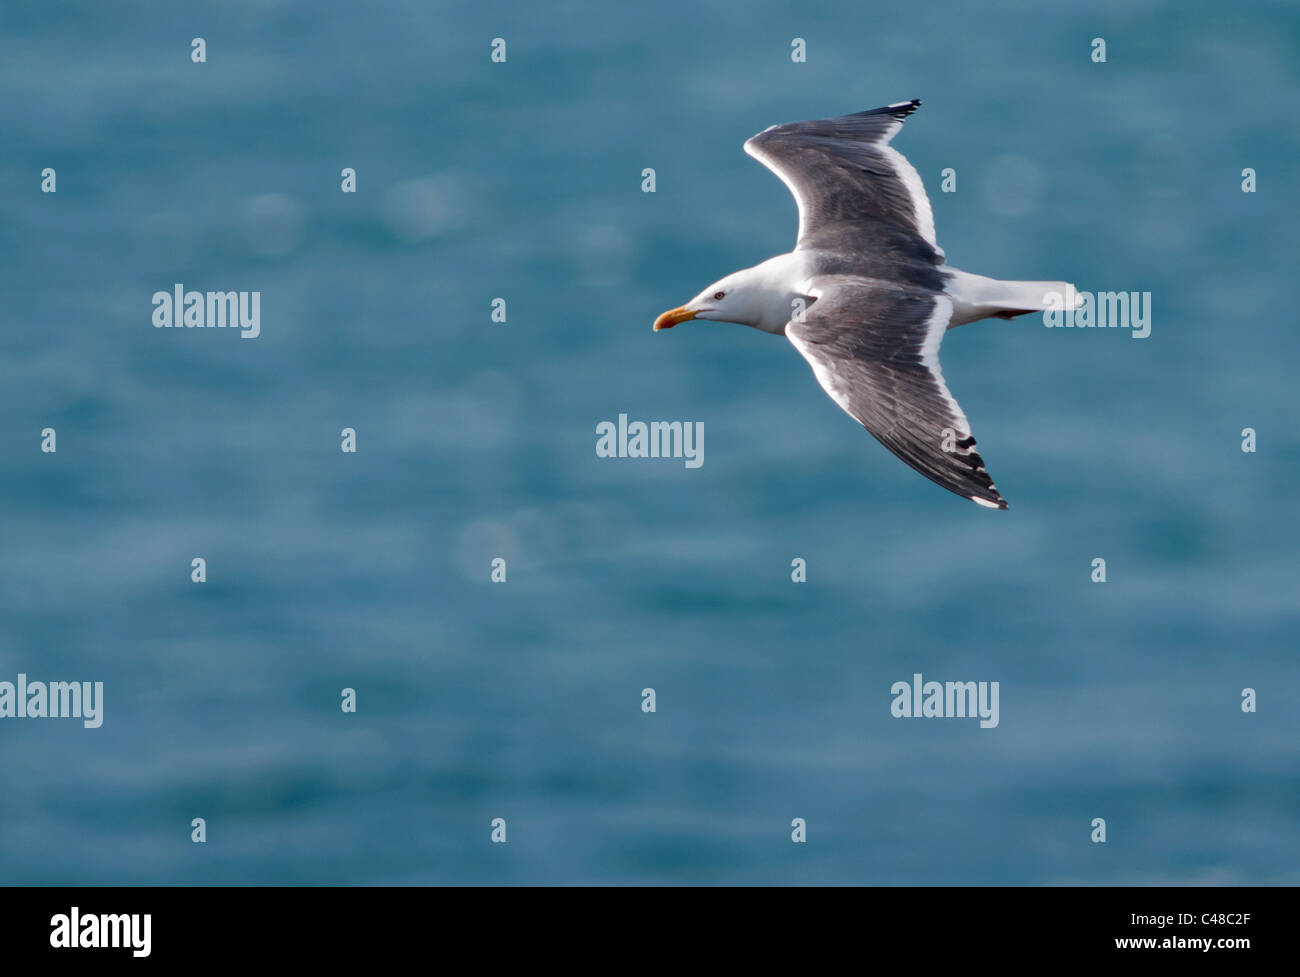 Lesser Black backed Gull (Larus fuscus) gliding over Atlantic, Pembrokeshire, Wales - Stock Image